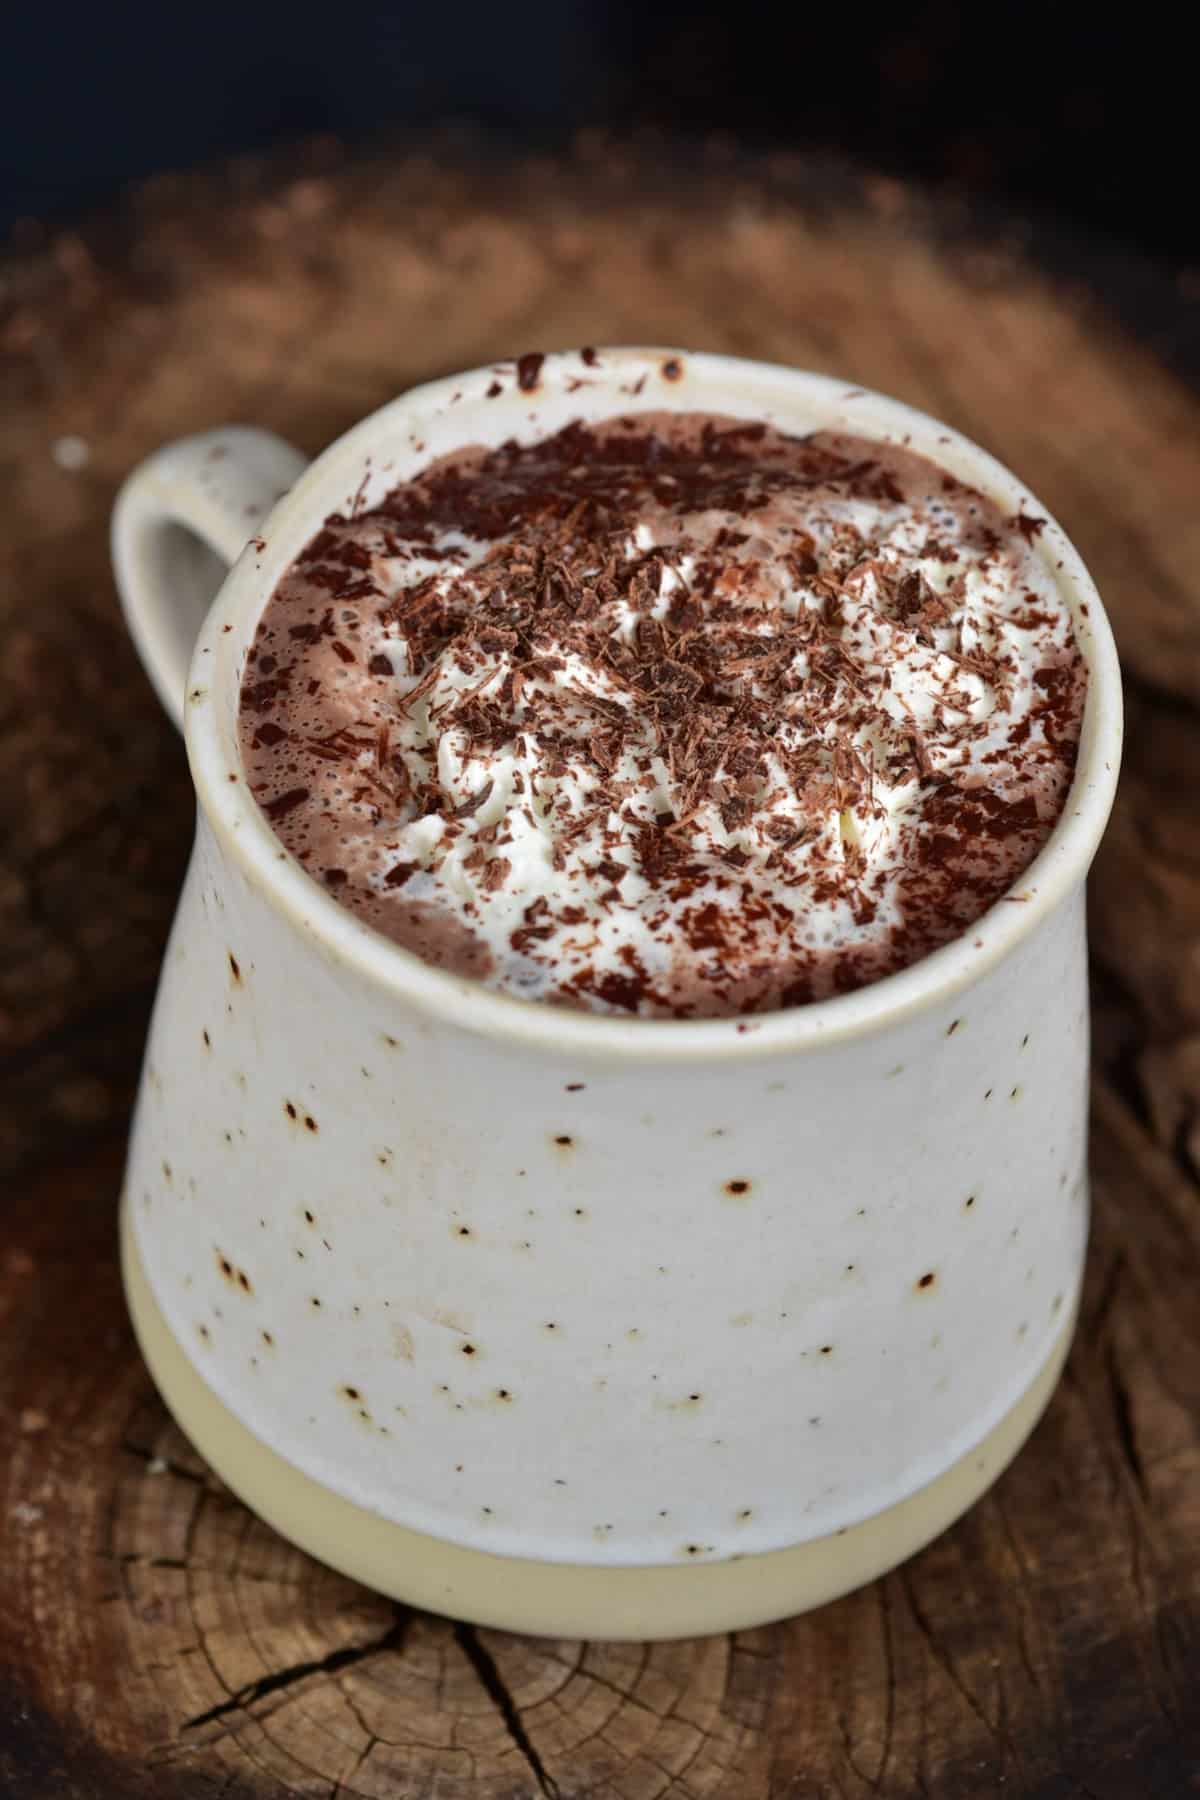 Hot chocolate topped with whipped cream and chocolate shavings in a cup